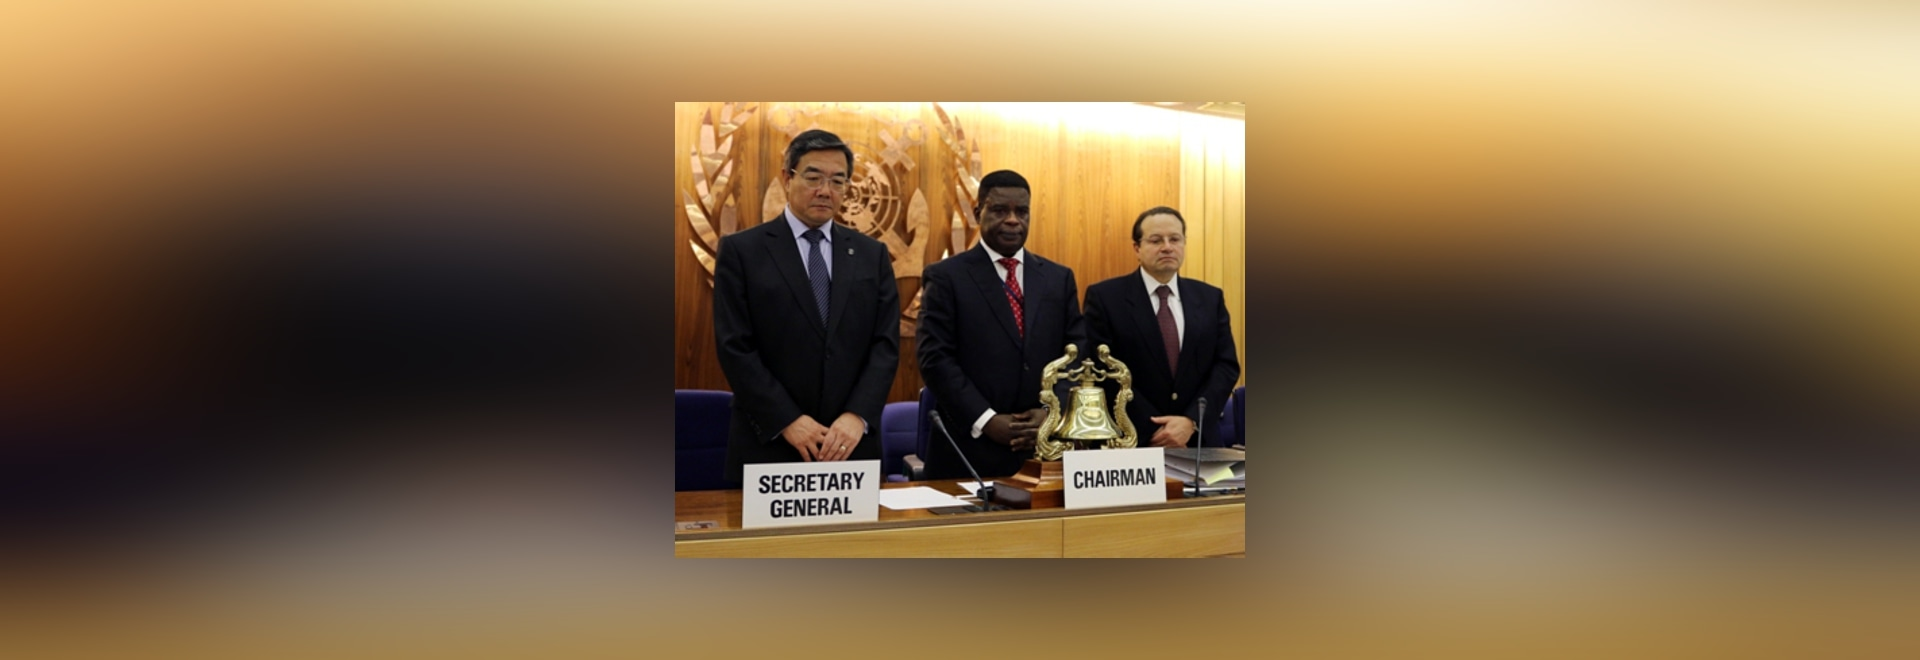 Observing silence for Sewol victims. Left to right: Mr. Koji Sekimizu, Secretary-General, IMO; Mr. Kofi Mbiah (Ghana), Chairman, Legal Committee; Mr. Gaetano Librando, Secretary of Legal Committee ...